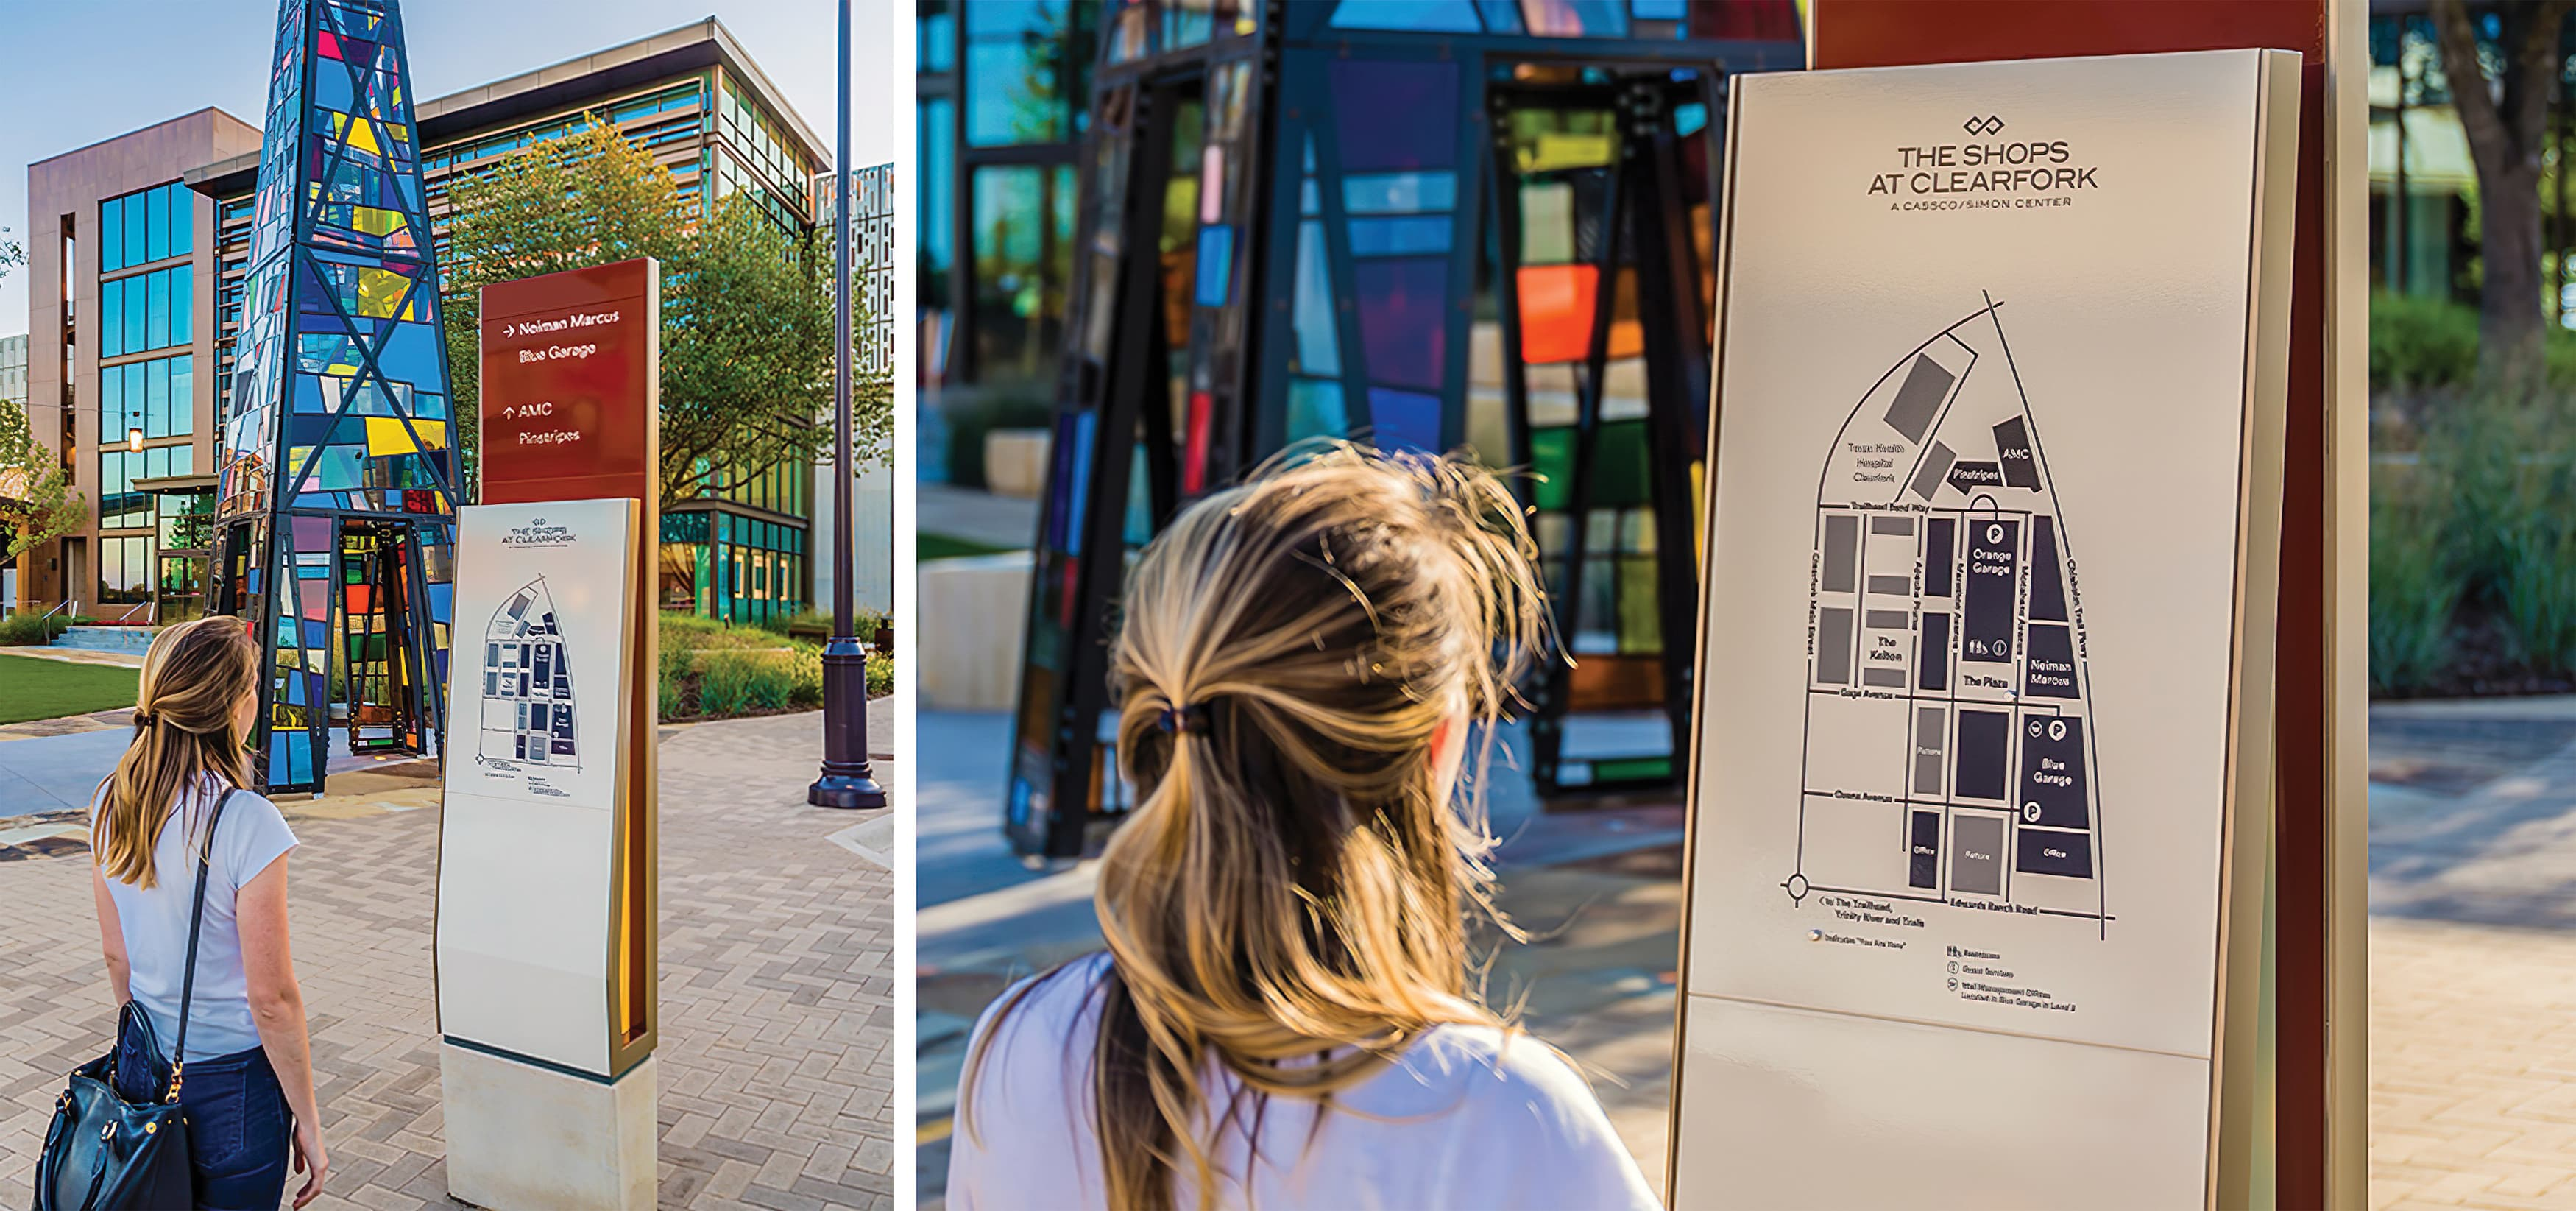 The Shops at Clearfork is an upscale, mixed-use development in the heart of Fort Worth. Pedestrian wayfinding design and site directory map.